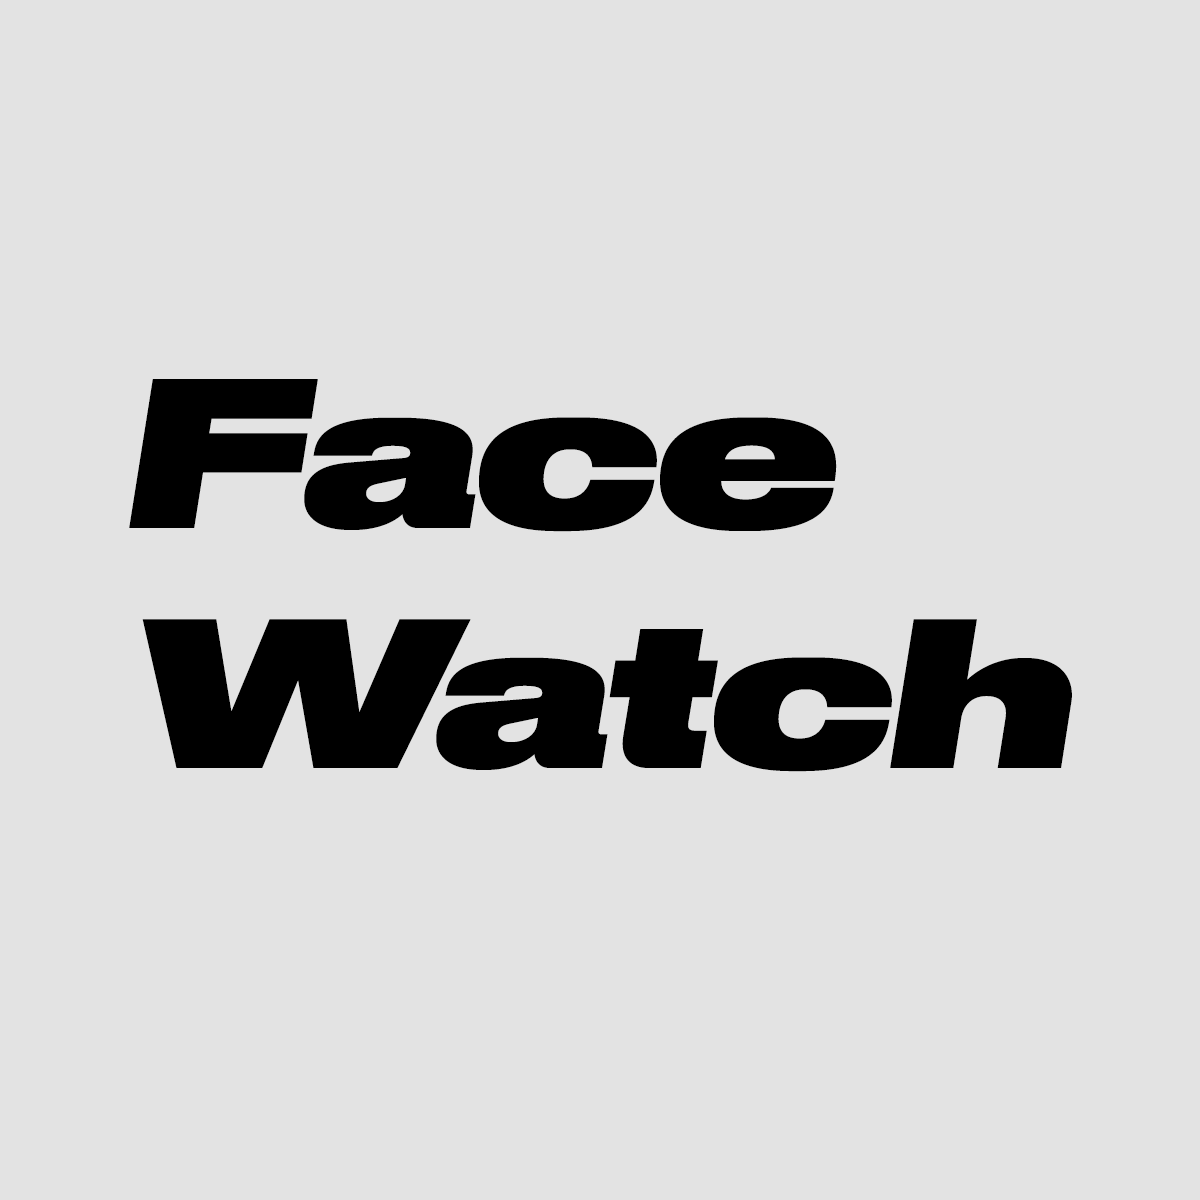 Logo of Facewatch